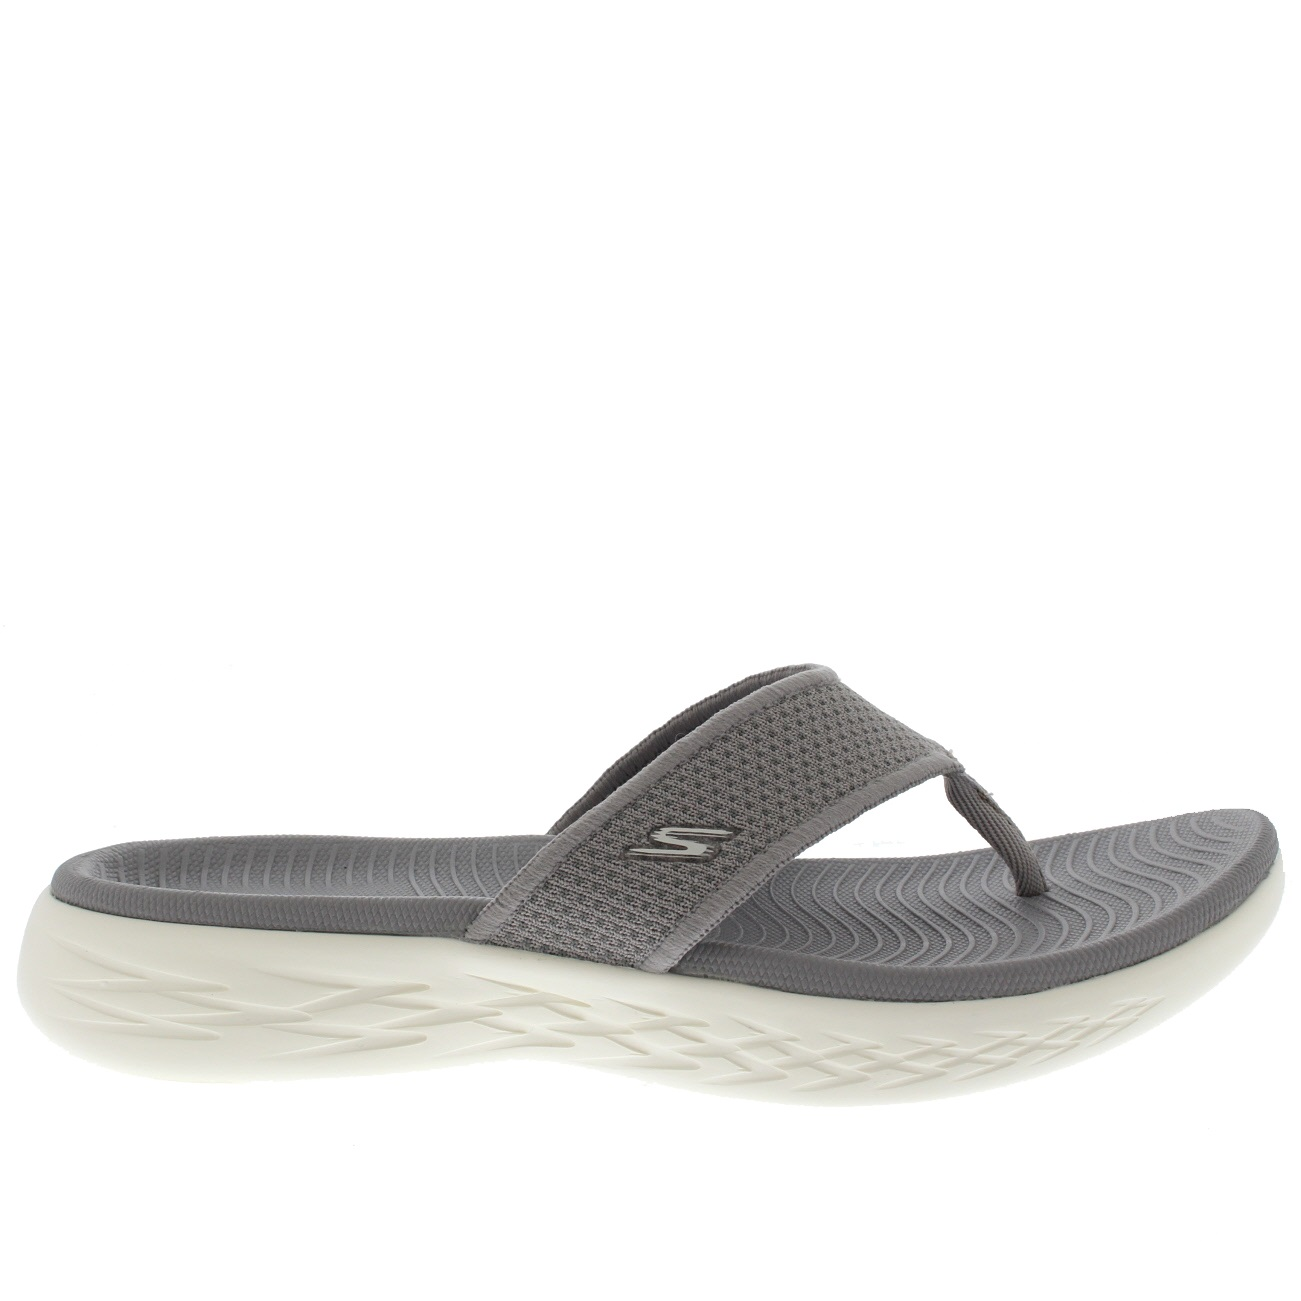 3635dd2dffd1 Ladies Skechers On The Go 600 Toe Post Thong Sandals Beach Flip Flops All  Sizes